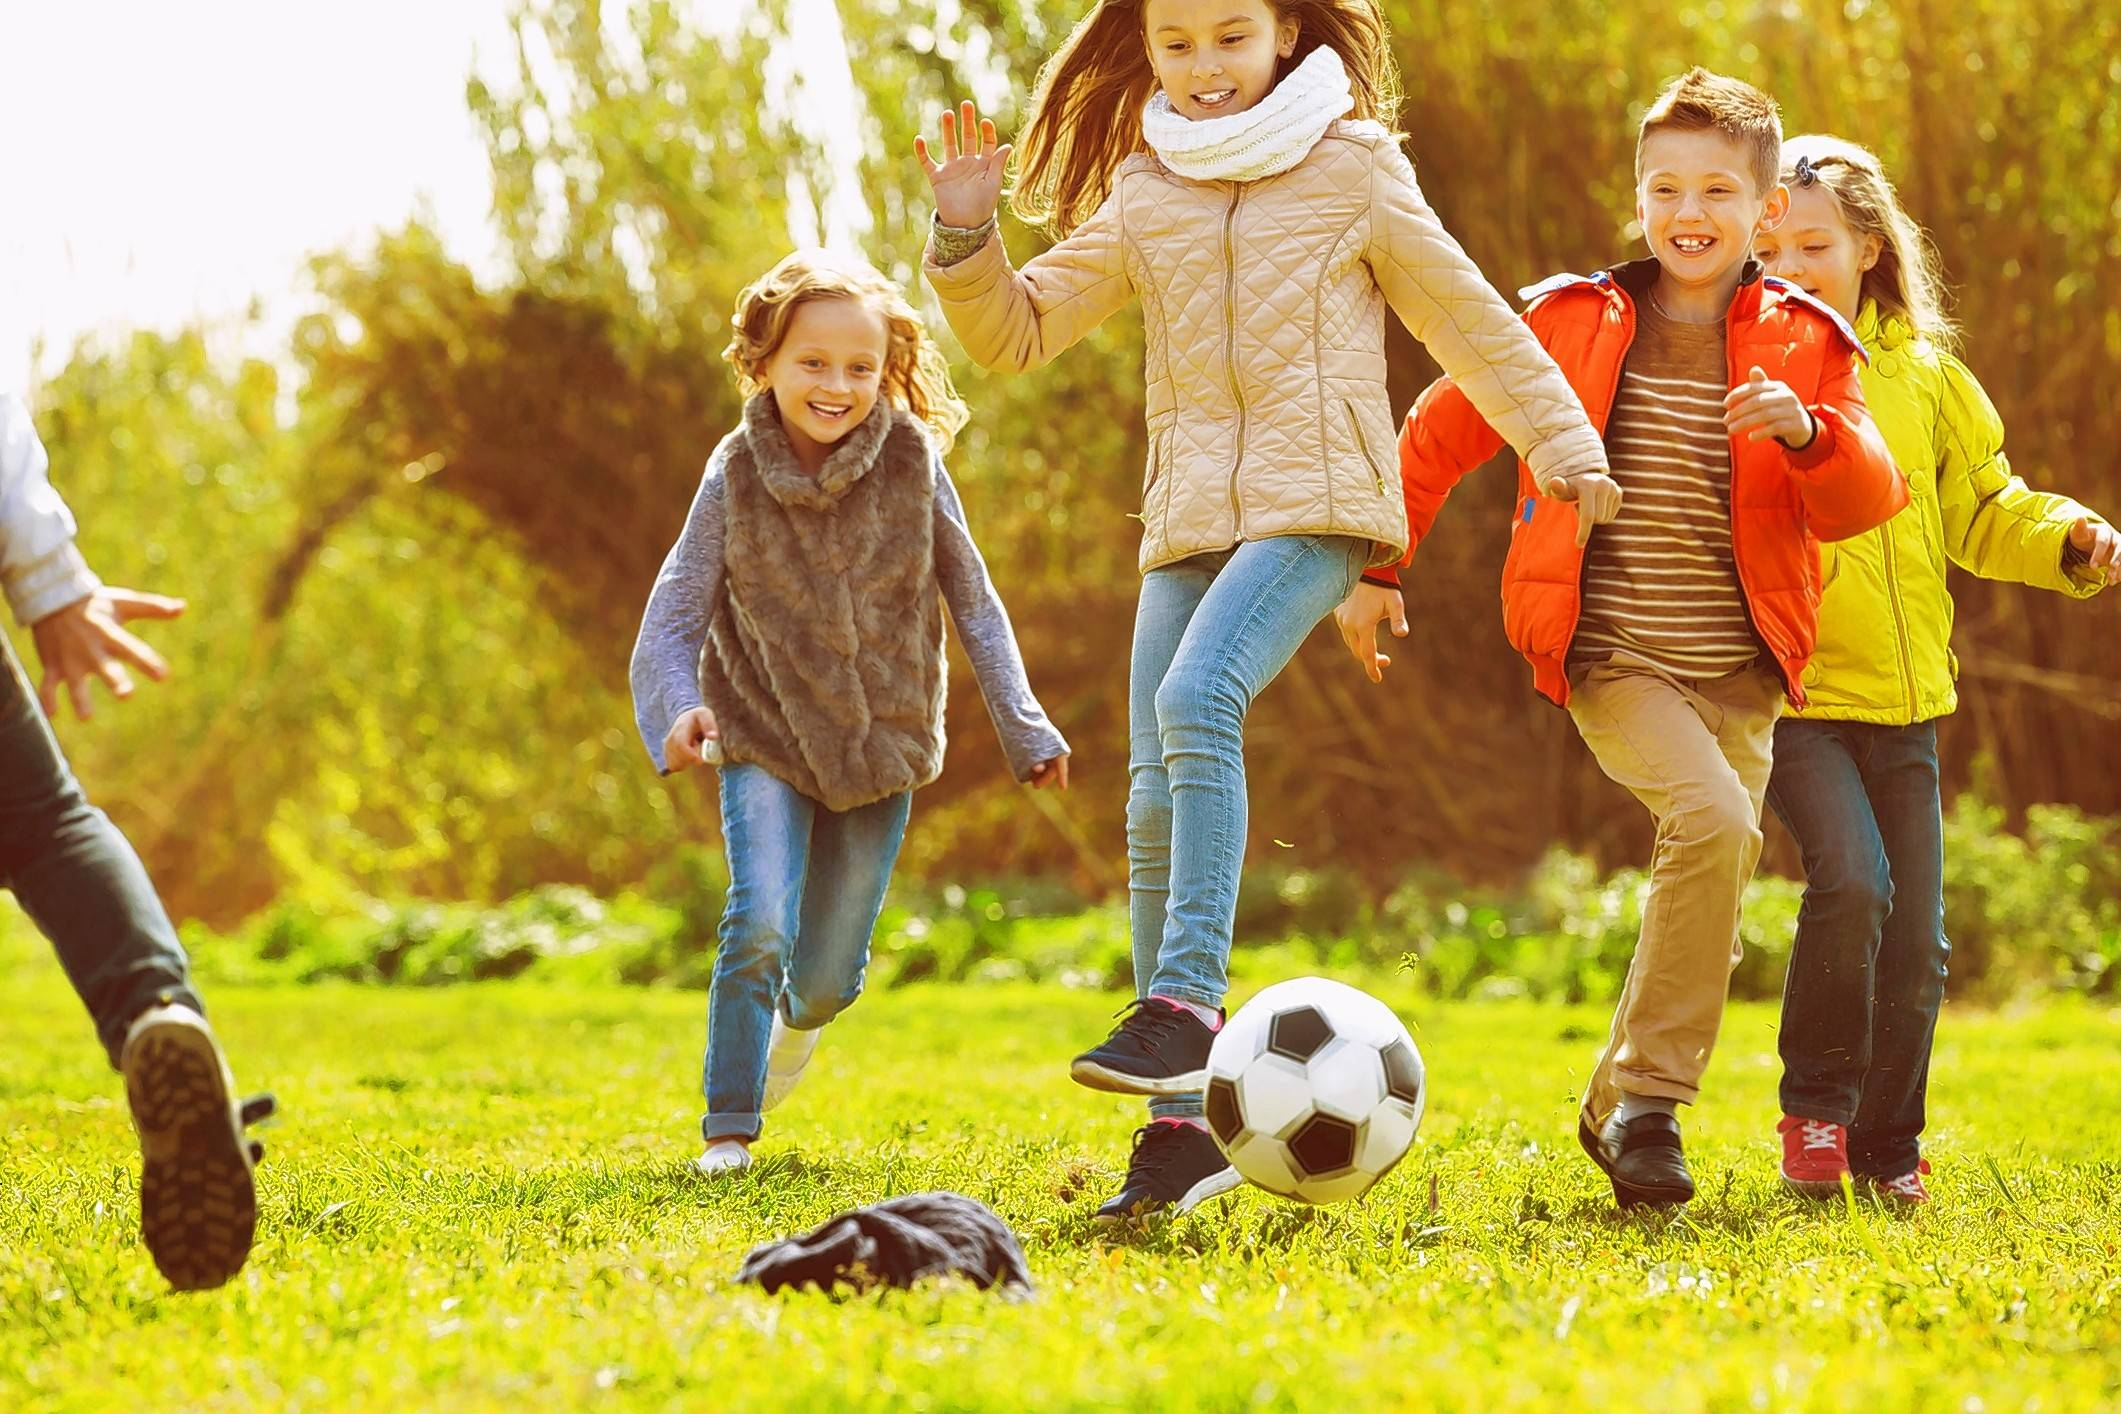 Children should be encouraged to play sports for the health benefit, focusing on the effort, not the outcome, says Dr. Albert Knuth, pediatric orthopedic surgeon at Advocate Children's Hospital.